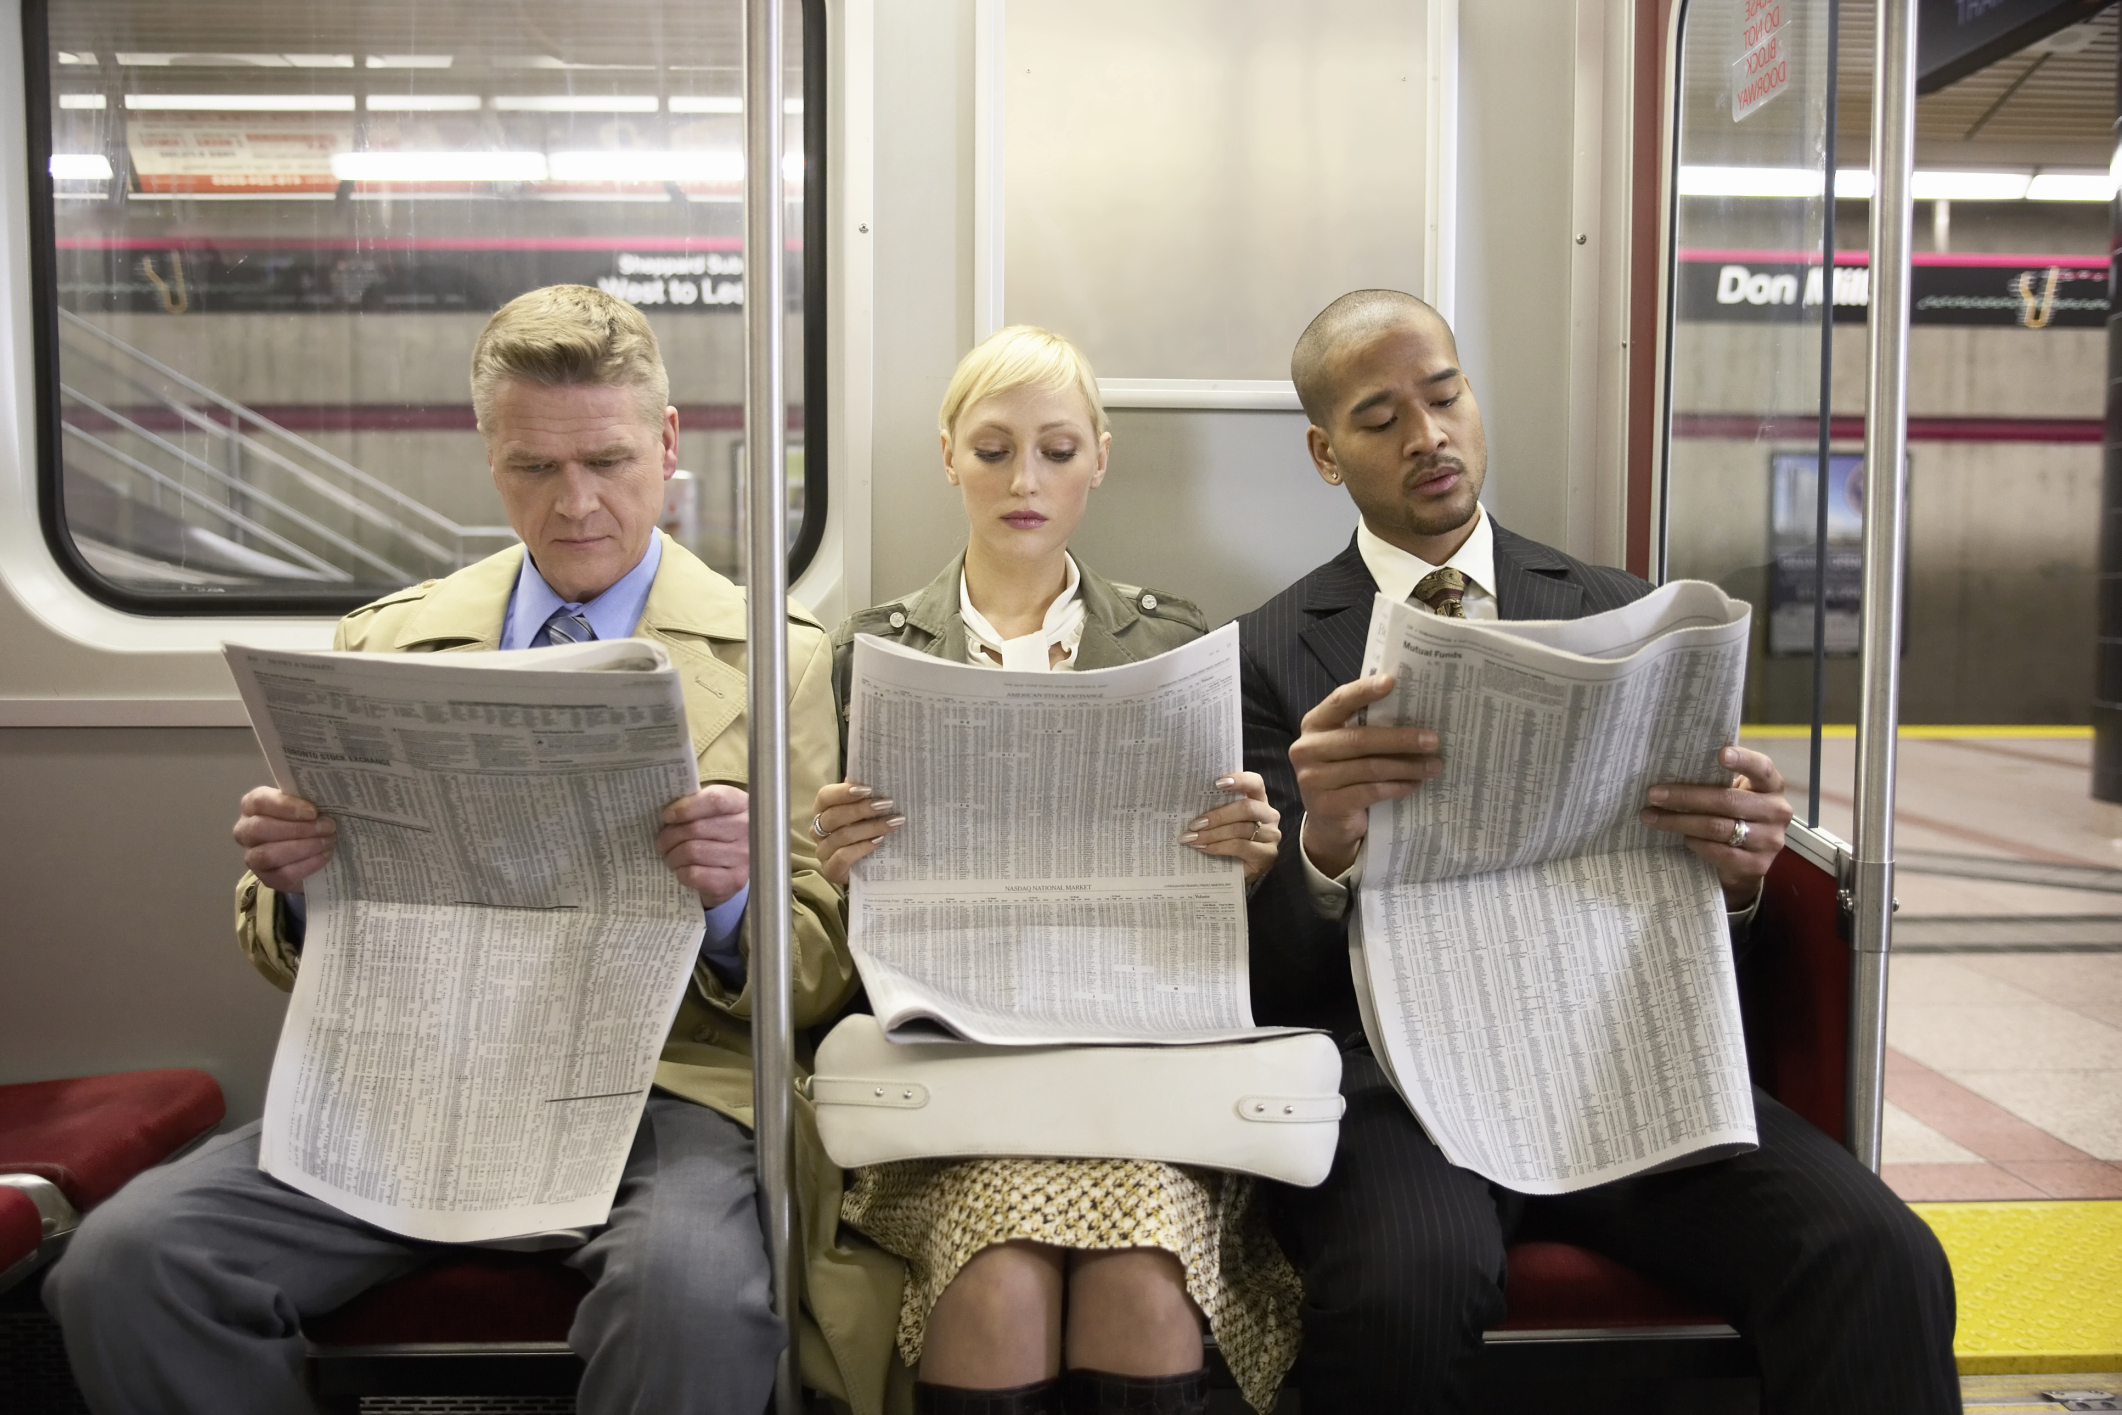 people reading a newspaper2